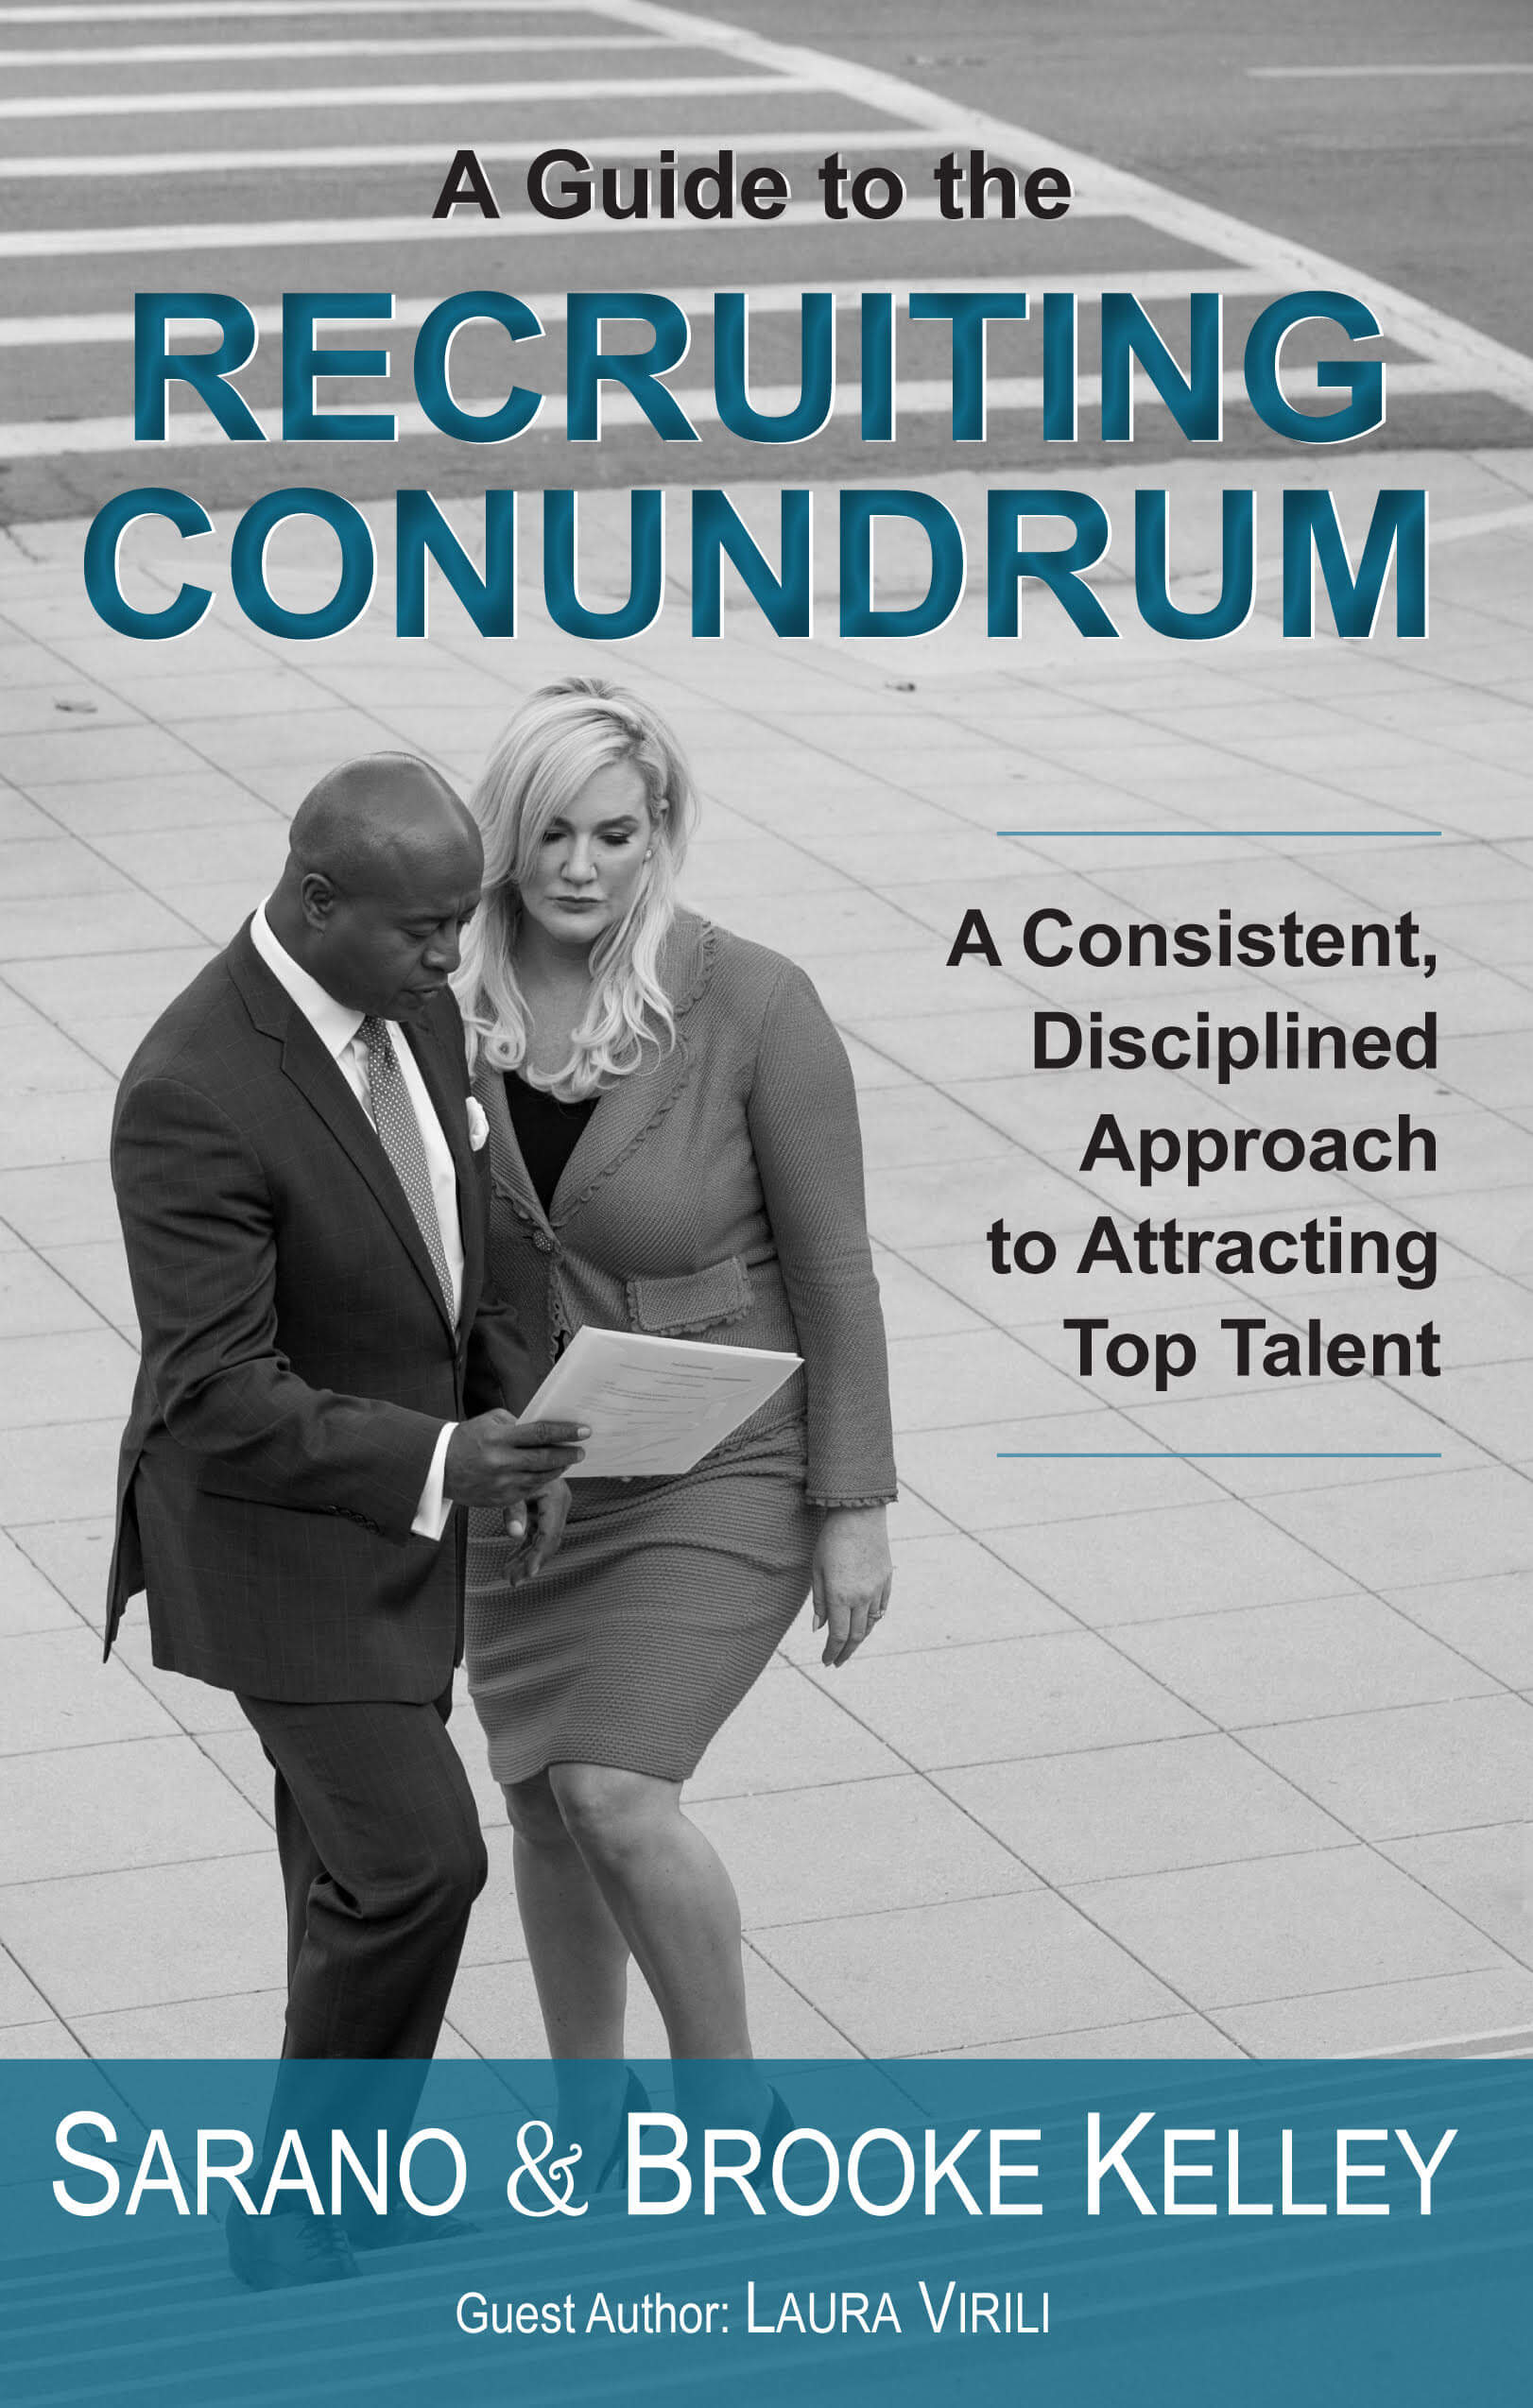 A Guide to the Recruiting Conundrum